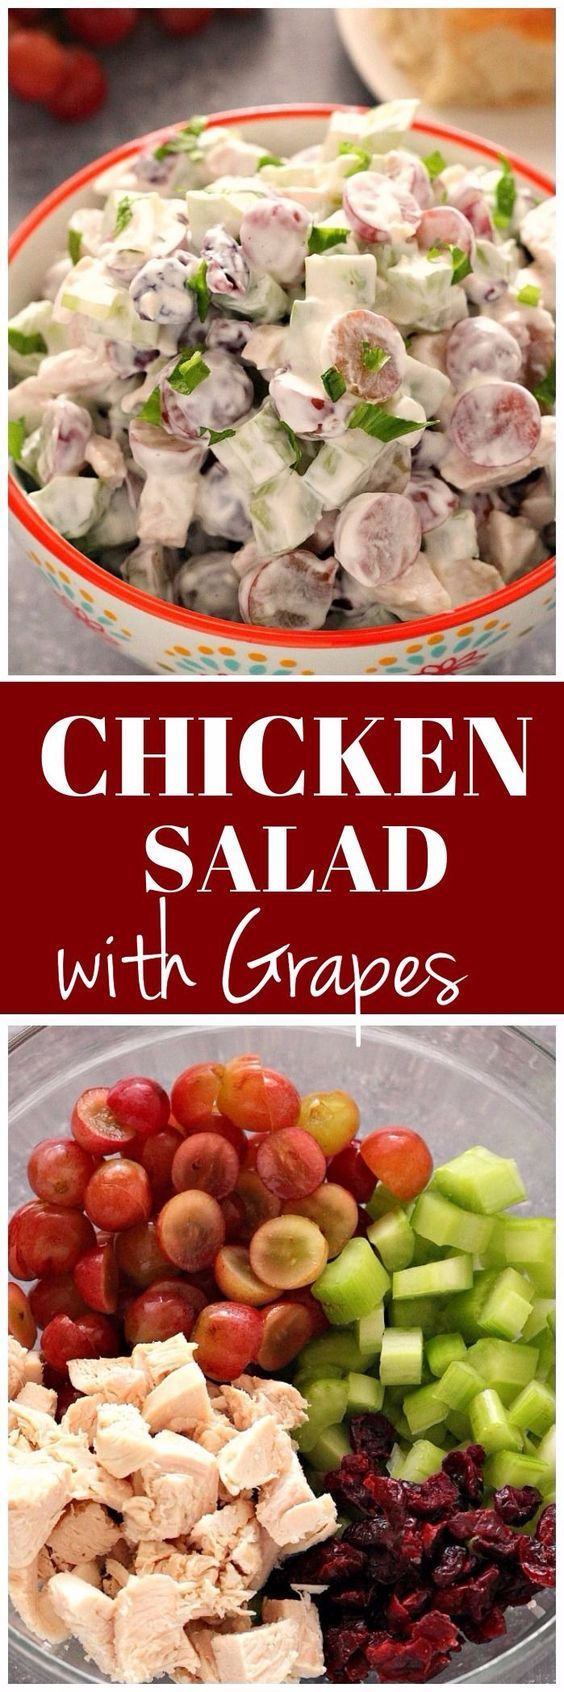 Easy Chicken Salad With Grapes Celery And Cranberries Tossed With Light Sour Cream Dressing Perfe With Images Easy Chicken Salad Chicken Salad With Grapes Grape Recipes